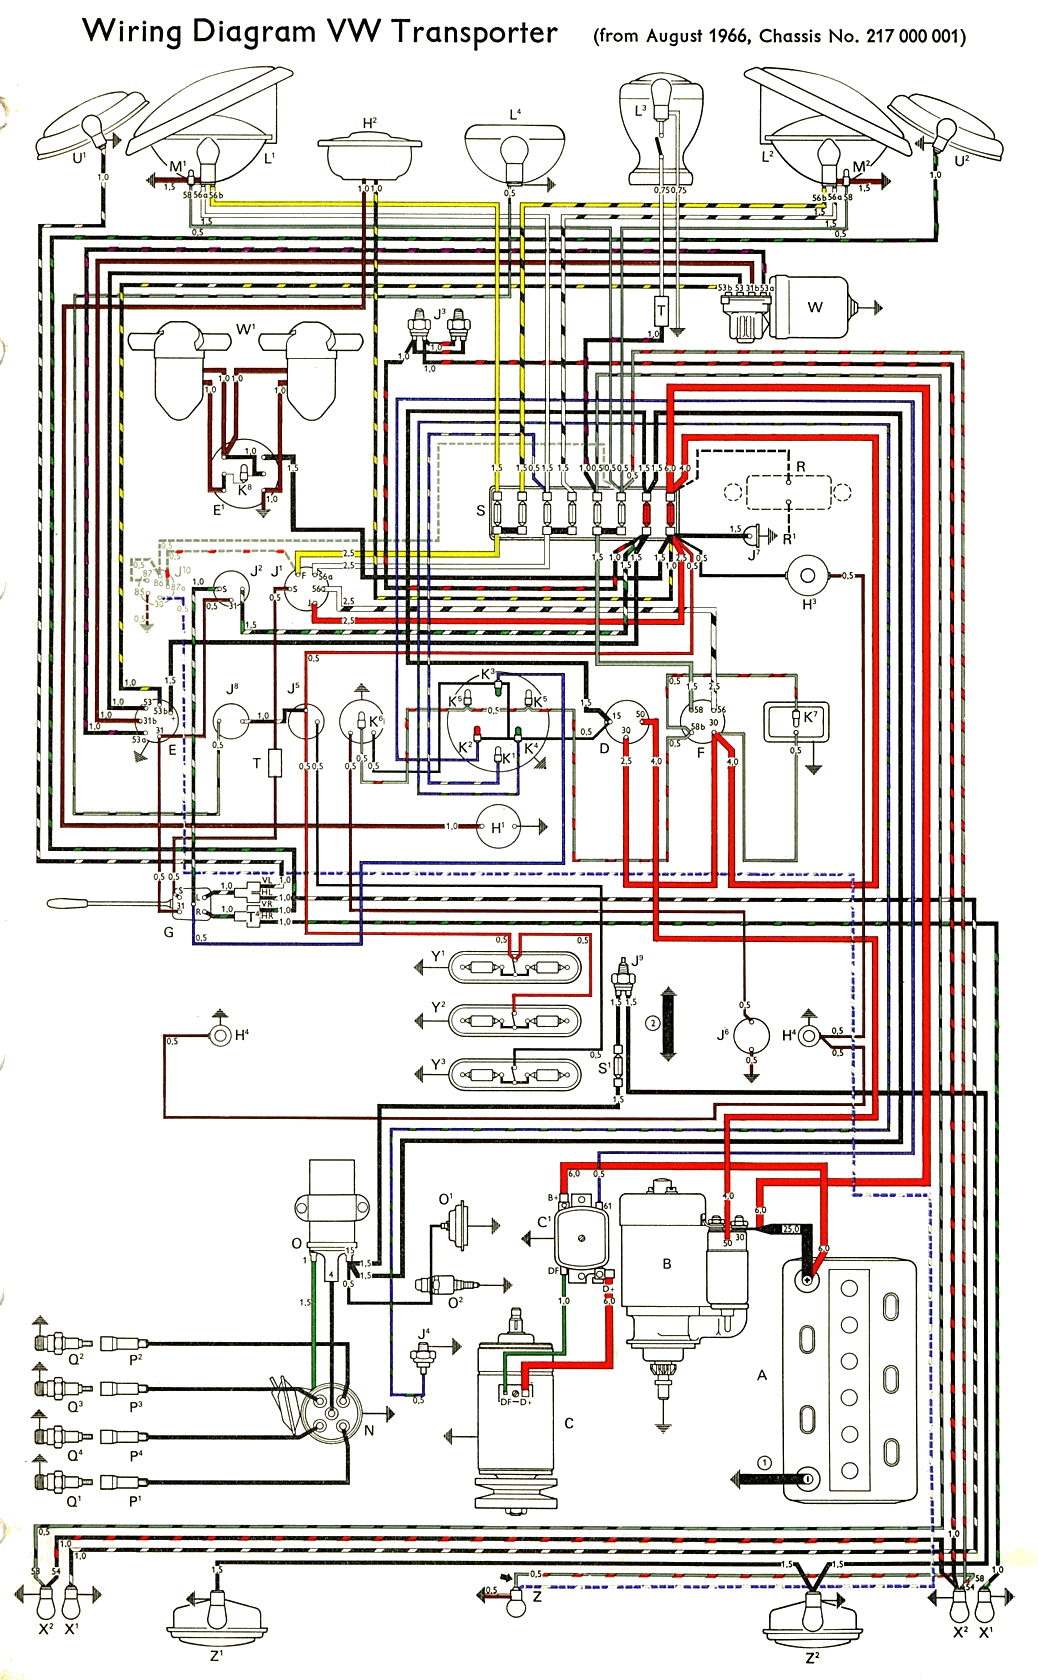 hight resolution of thesamba com type 2 wiring diagrams chevy ignition switch wiring diagram vw ignition wiring diagram